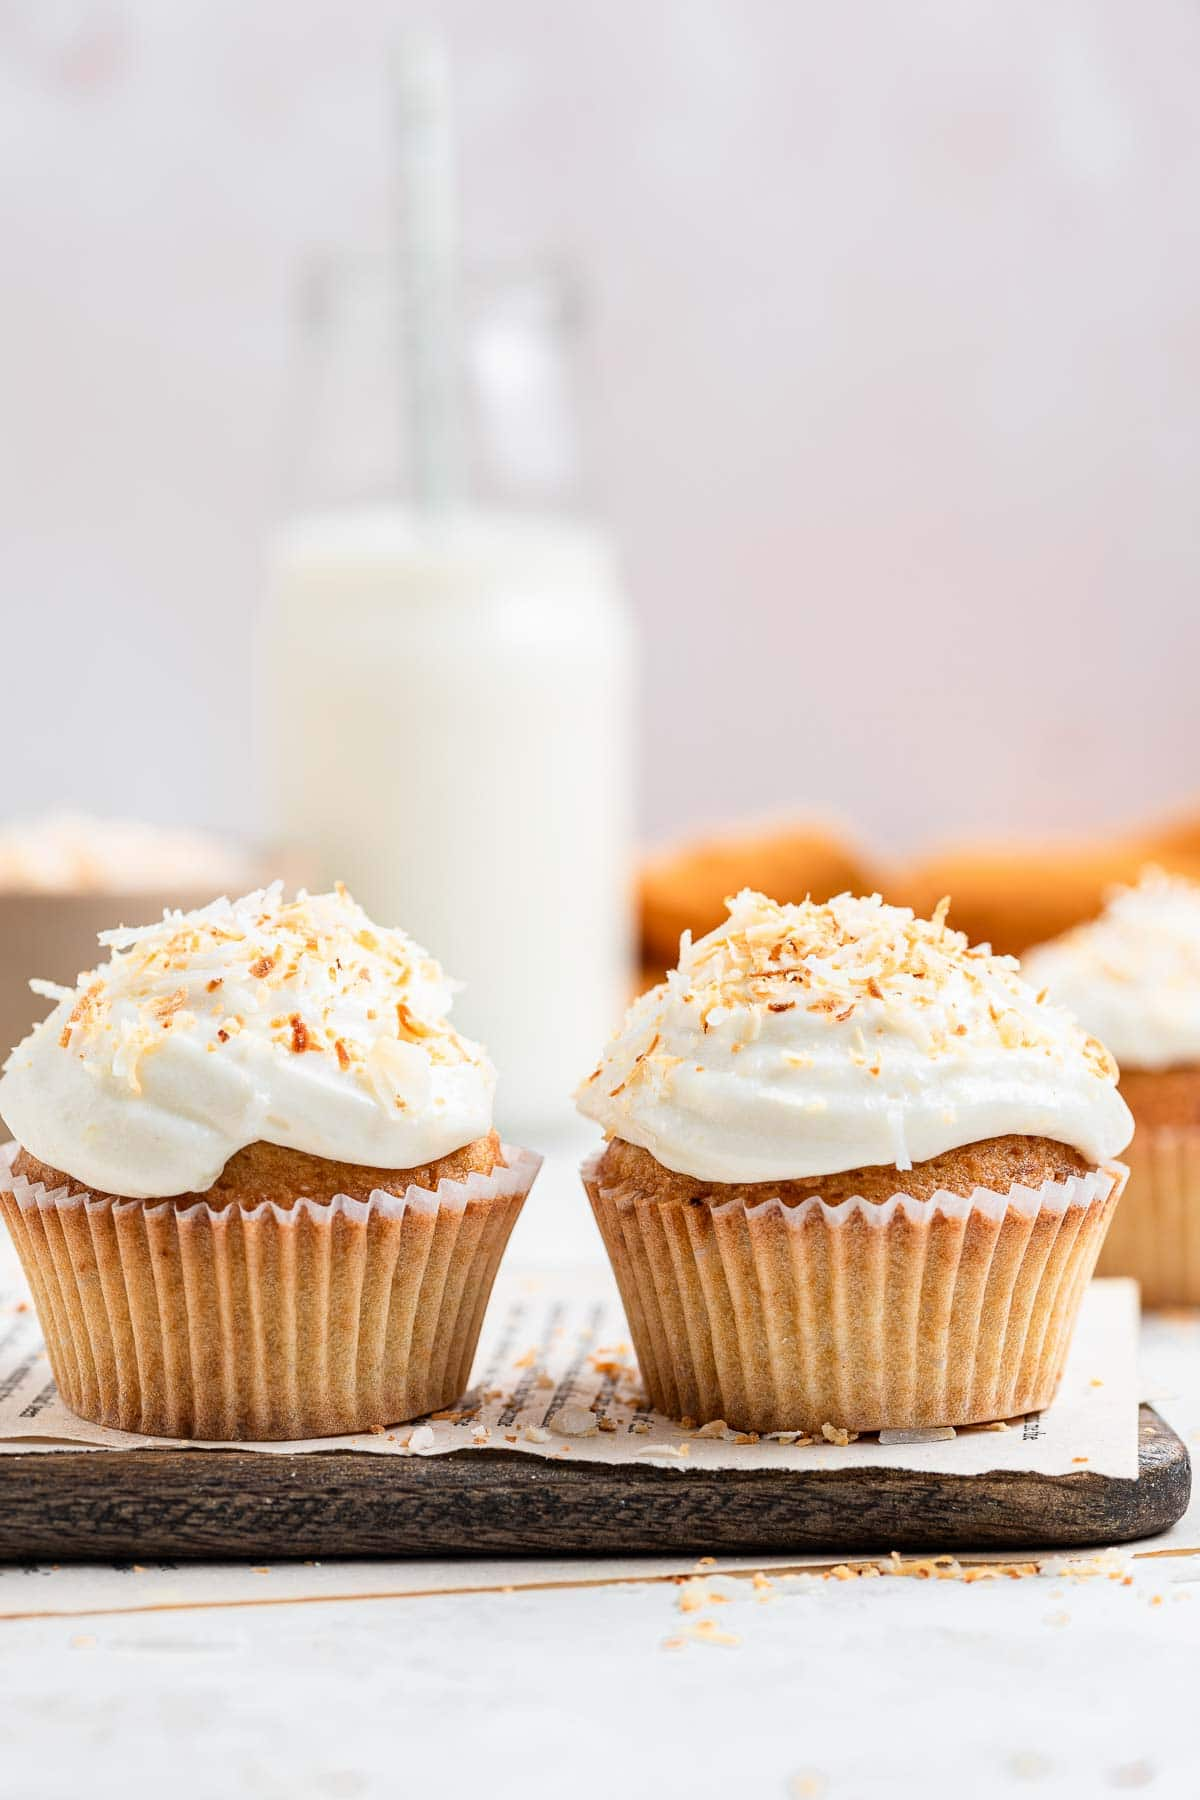 Two frosted coconut cupcakes with milk in the background.